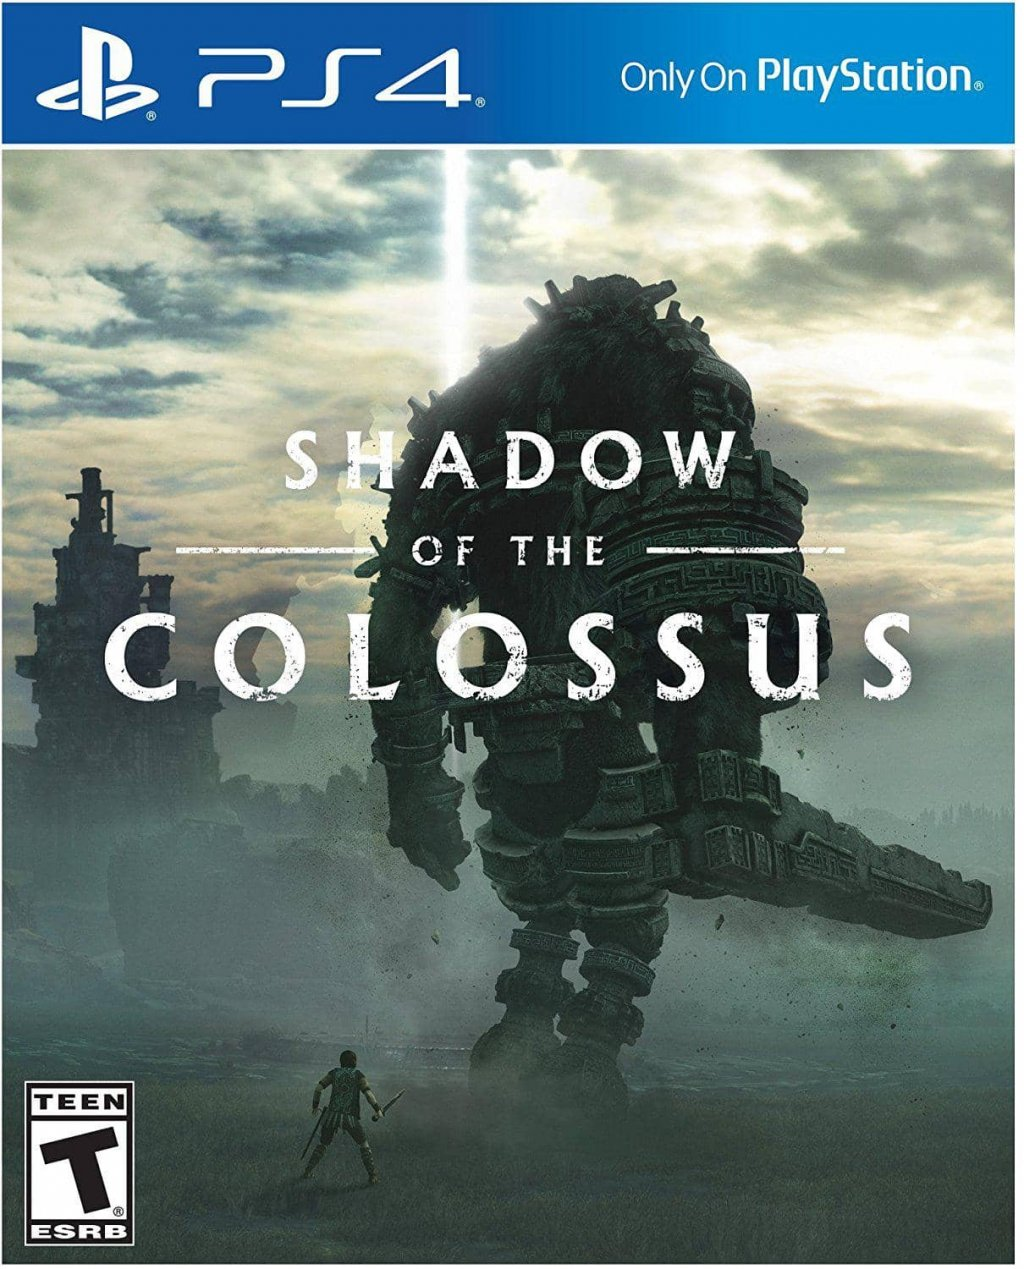 Jesi - Shadow of the Colossus PS4 a 34,99€ | Jungle Game | Jesi, Via Gramsci, 2 | Tel. 0731722023